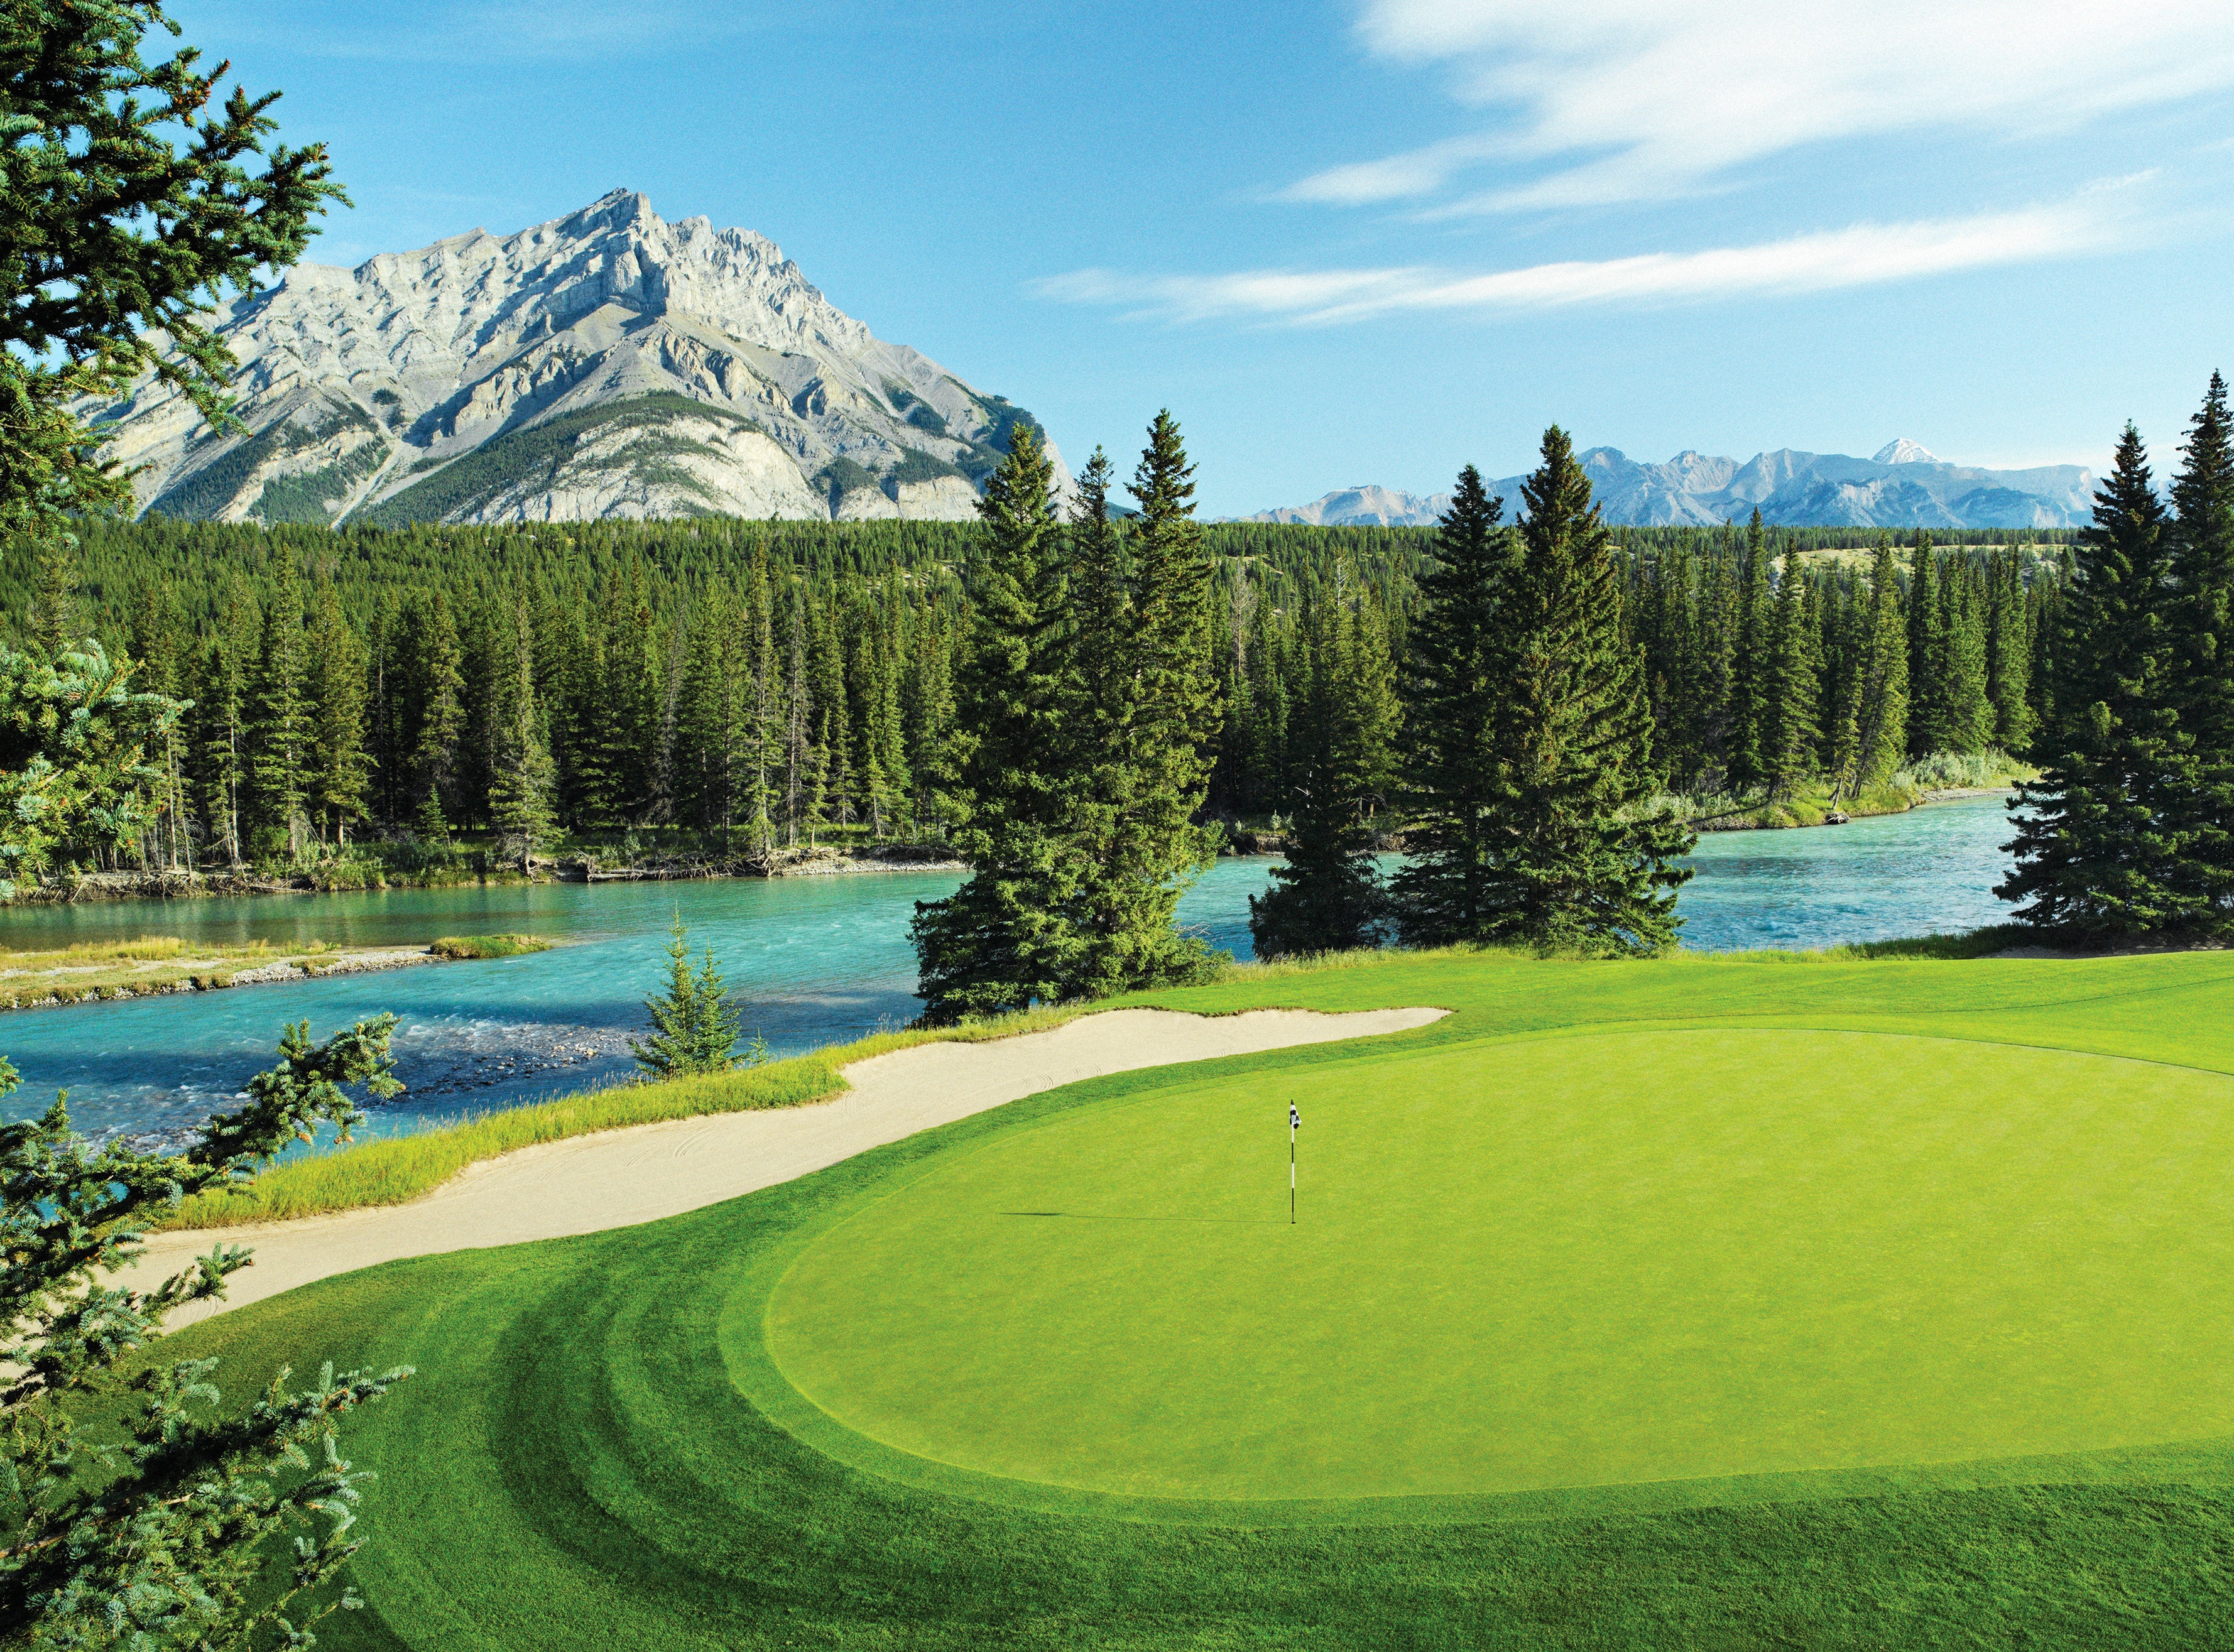 Golf Mountains Nature Outdoors Resort Scenic views Sport tree grass sky structure mountain green sport venue grassland golf course sports golf club outdoor recreation meadow recreation lush lawn grassy plant mountain range Forest hillside surrounded